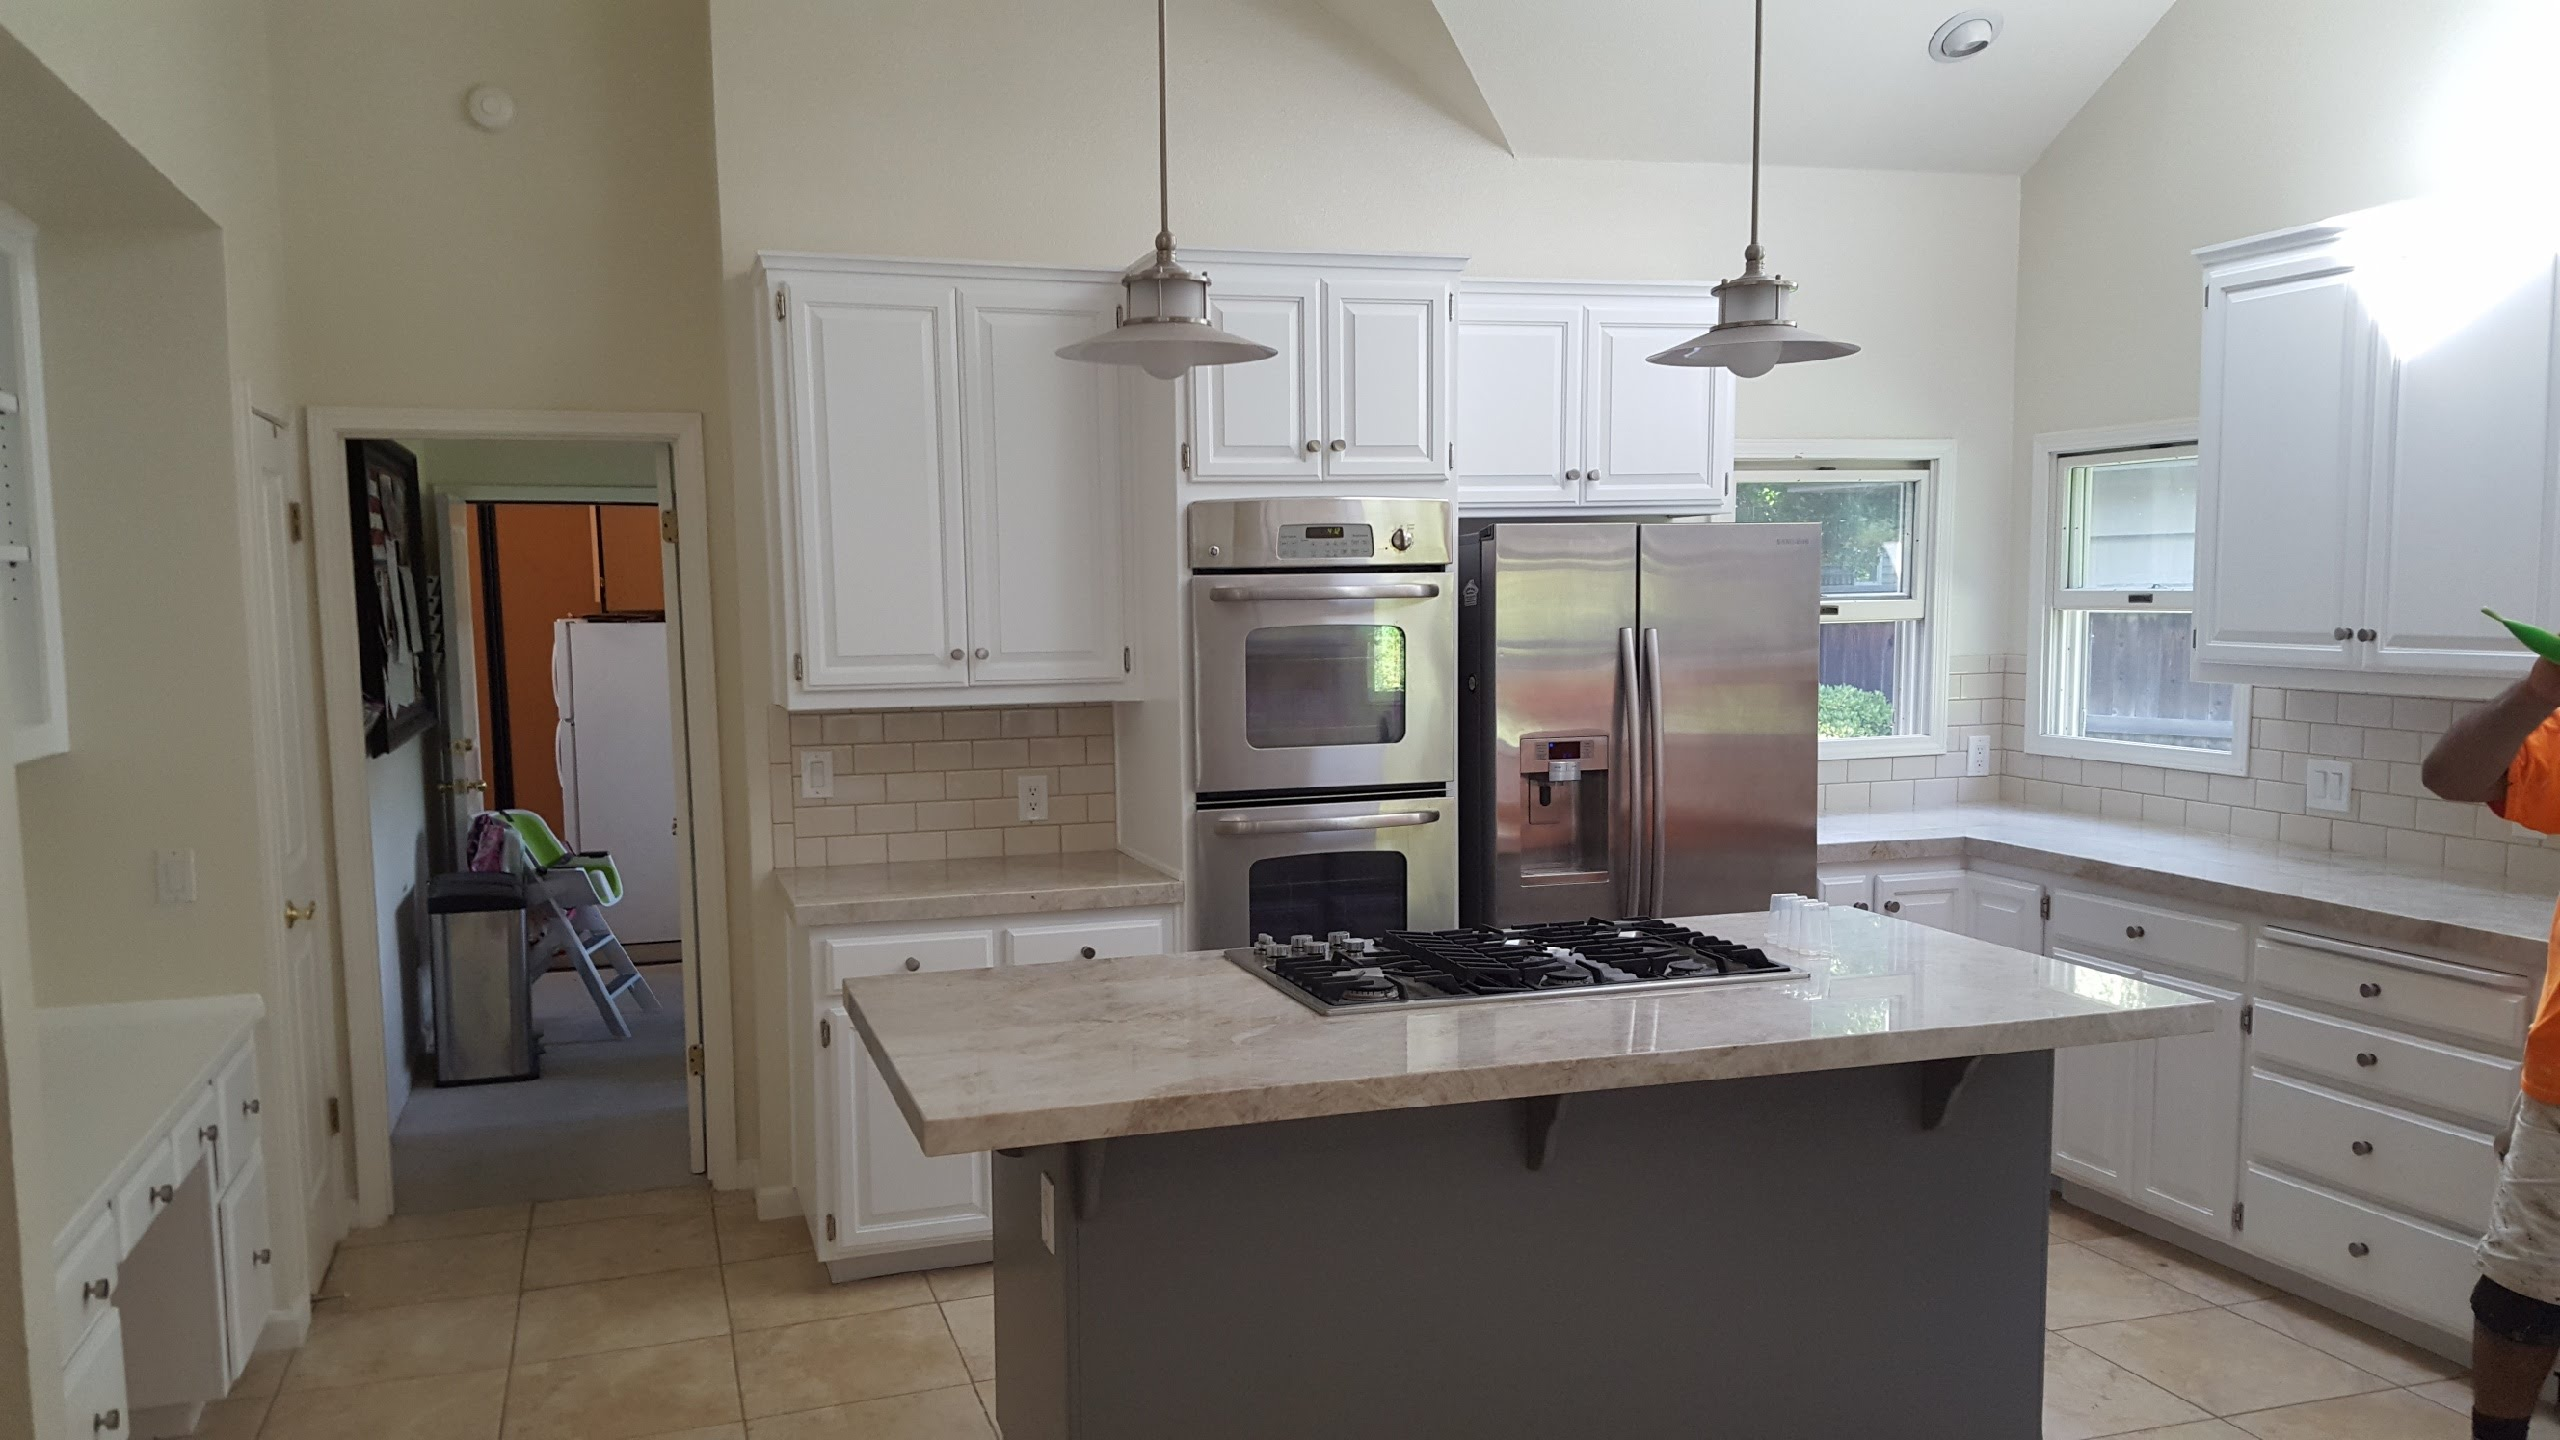 residential-interior-kitchen-1